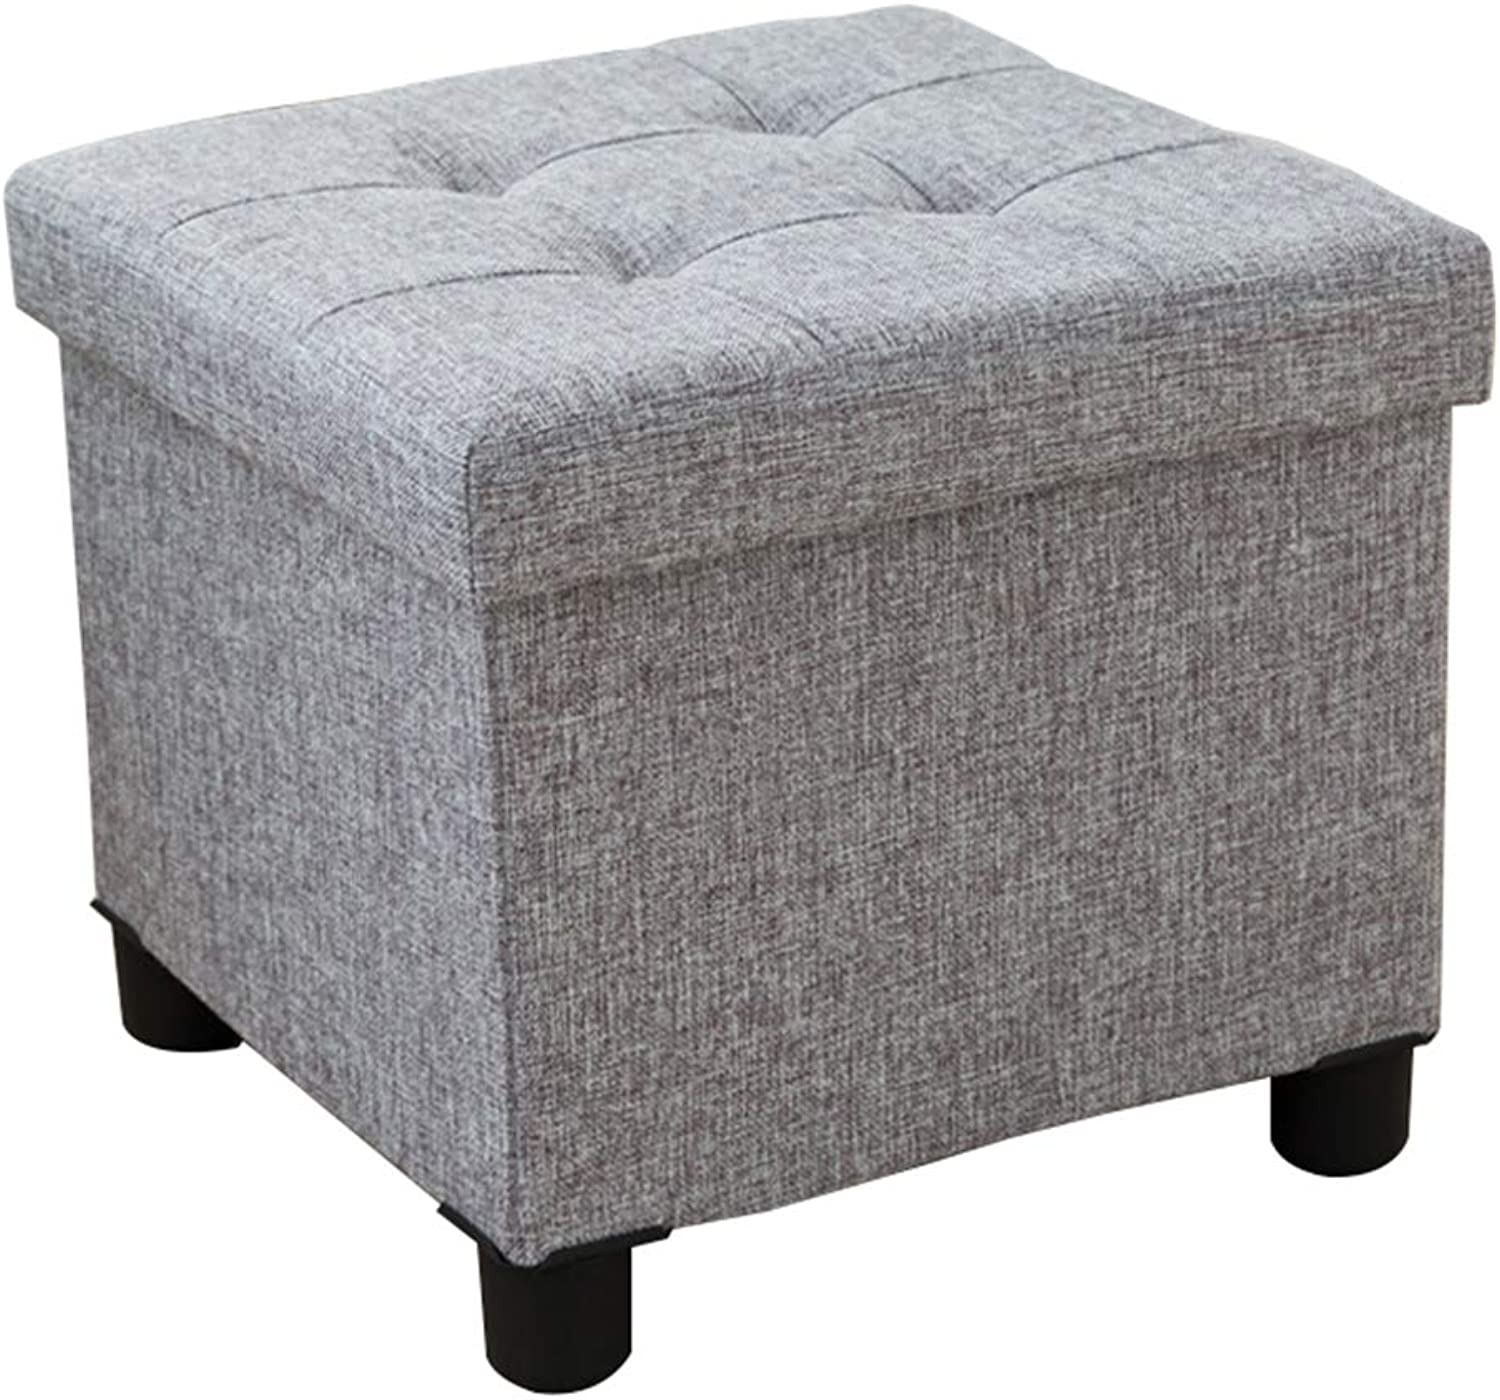 Stool - shoes Bench, Household Storage Sofa Bench, can sit in The Storage Box (38  38  35) cm